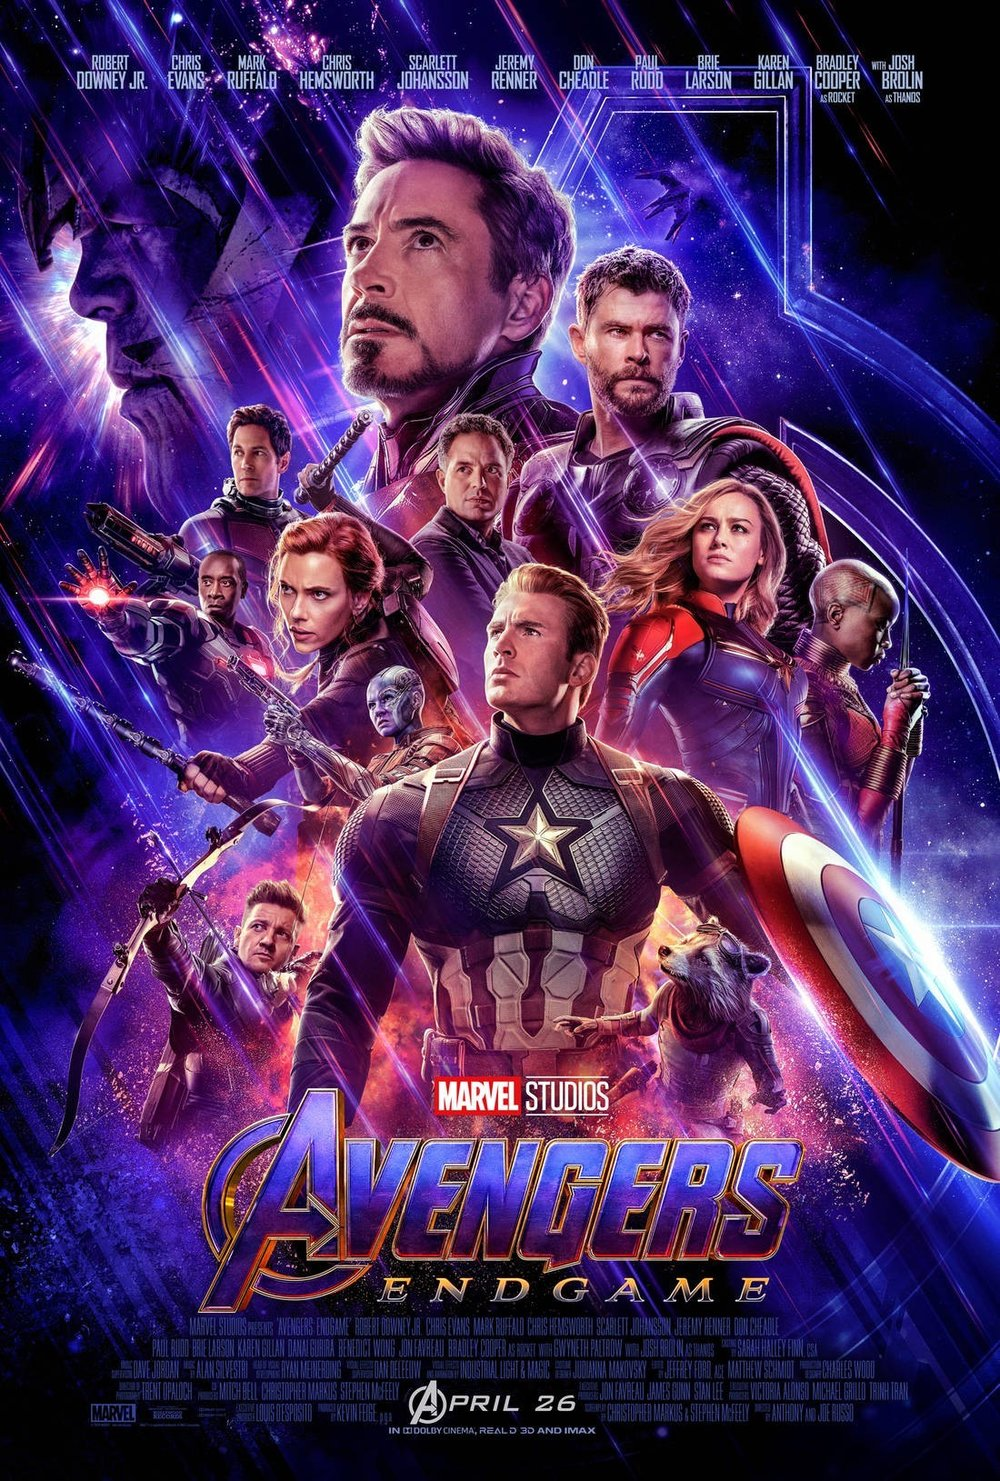 Avengers: Endgame - by Kathia WoodsWe have had a ten-year relationship with the MCU. It started with IRON MAN, moved on to Captain America, inserted young Spider-Man and even gave us royalty in Black Panther. So here we are ten years later ready to sit another three hours with our favorite superheroes. After speculating and scouring the internet for the clues the day has finally come. Avengers Endgame is here.The question is, was it worth it? A resounding yes. This movie was thoughtful, and action-packed at the same time.It opens with our remaining Avengers trying to resolute what just happened. One would think that the Russo Brothers would give us a movie filled with Sadness and Revenge, but that's not the case here. Thor still gives us strength and humor. Cap gives us optimism and Tony aka Iron Man finally figures out what's important to him. Dr. Banner/Hulk is still a mystery however Black Widow gives us a little vulnerability.Where does Captain Marvel fit, and will they ever find the other Avengers all those questions get answered?Some things to be aware of, the first half of the movie takes a slower pace. It allows the surviving Avengers to grieve. Also, the reintroduction of Ant-Man and Arrow are handled smoothly.This movie is an emotional rollercoaster at times. This movie is for us die-hard Marvel fans. The ones that grew up reading the comic books and binged watched all the other films in the MCU getting ready for this,We're going to say goodbye to some favorites but not before we are treated to epic battles and friendships are mended.Avengers, Endgame is everything we want from Marvel and more. One last Cameo from Stan Lee and one last time our Avengers face down evil. The three hours are going to fly by and leave us a little sad, but Endgame gives us a fitting ending.Scale: I give this movie a nine. Good things do come to those that wait.Diversity: It gets 8.5 superheroes do all come in different shapes and color.